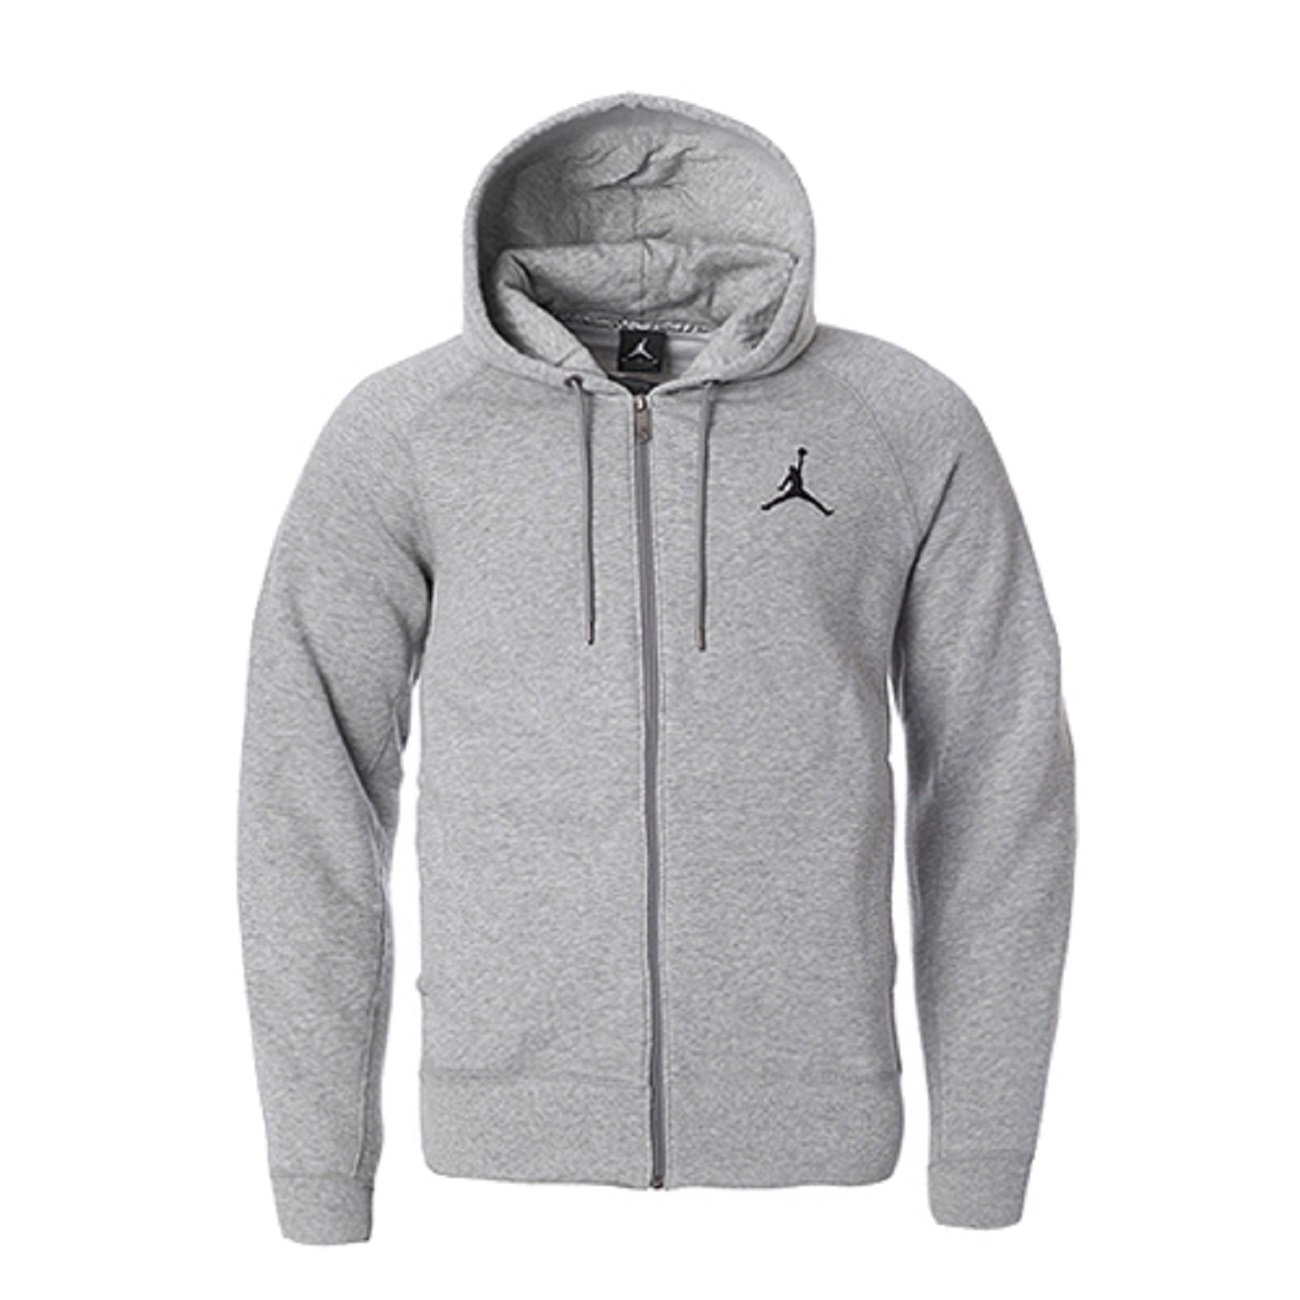 ALL SIZES AIR JORDAN Flight Fleece Full Zip Hoodie Sweatshirt jumper Jumpman